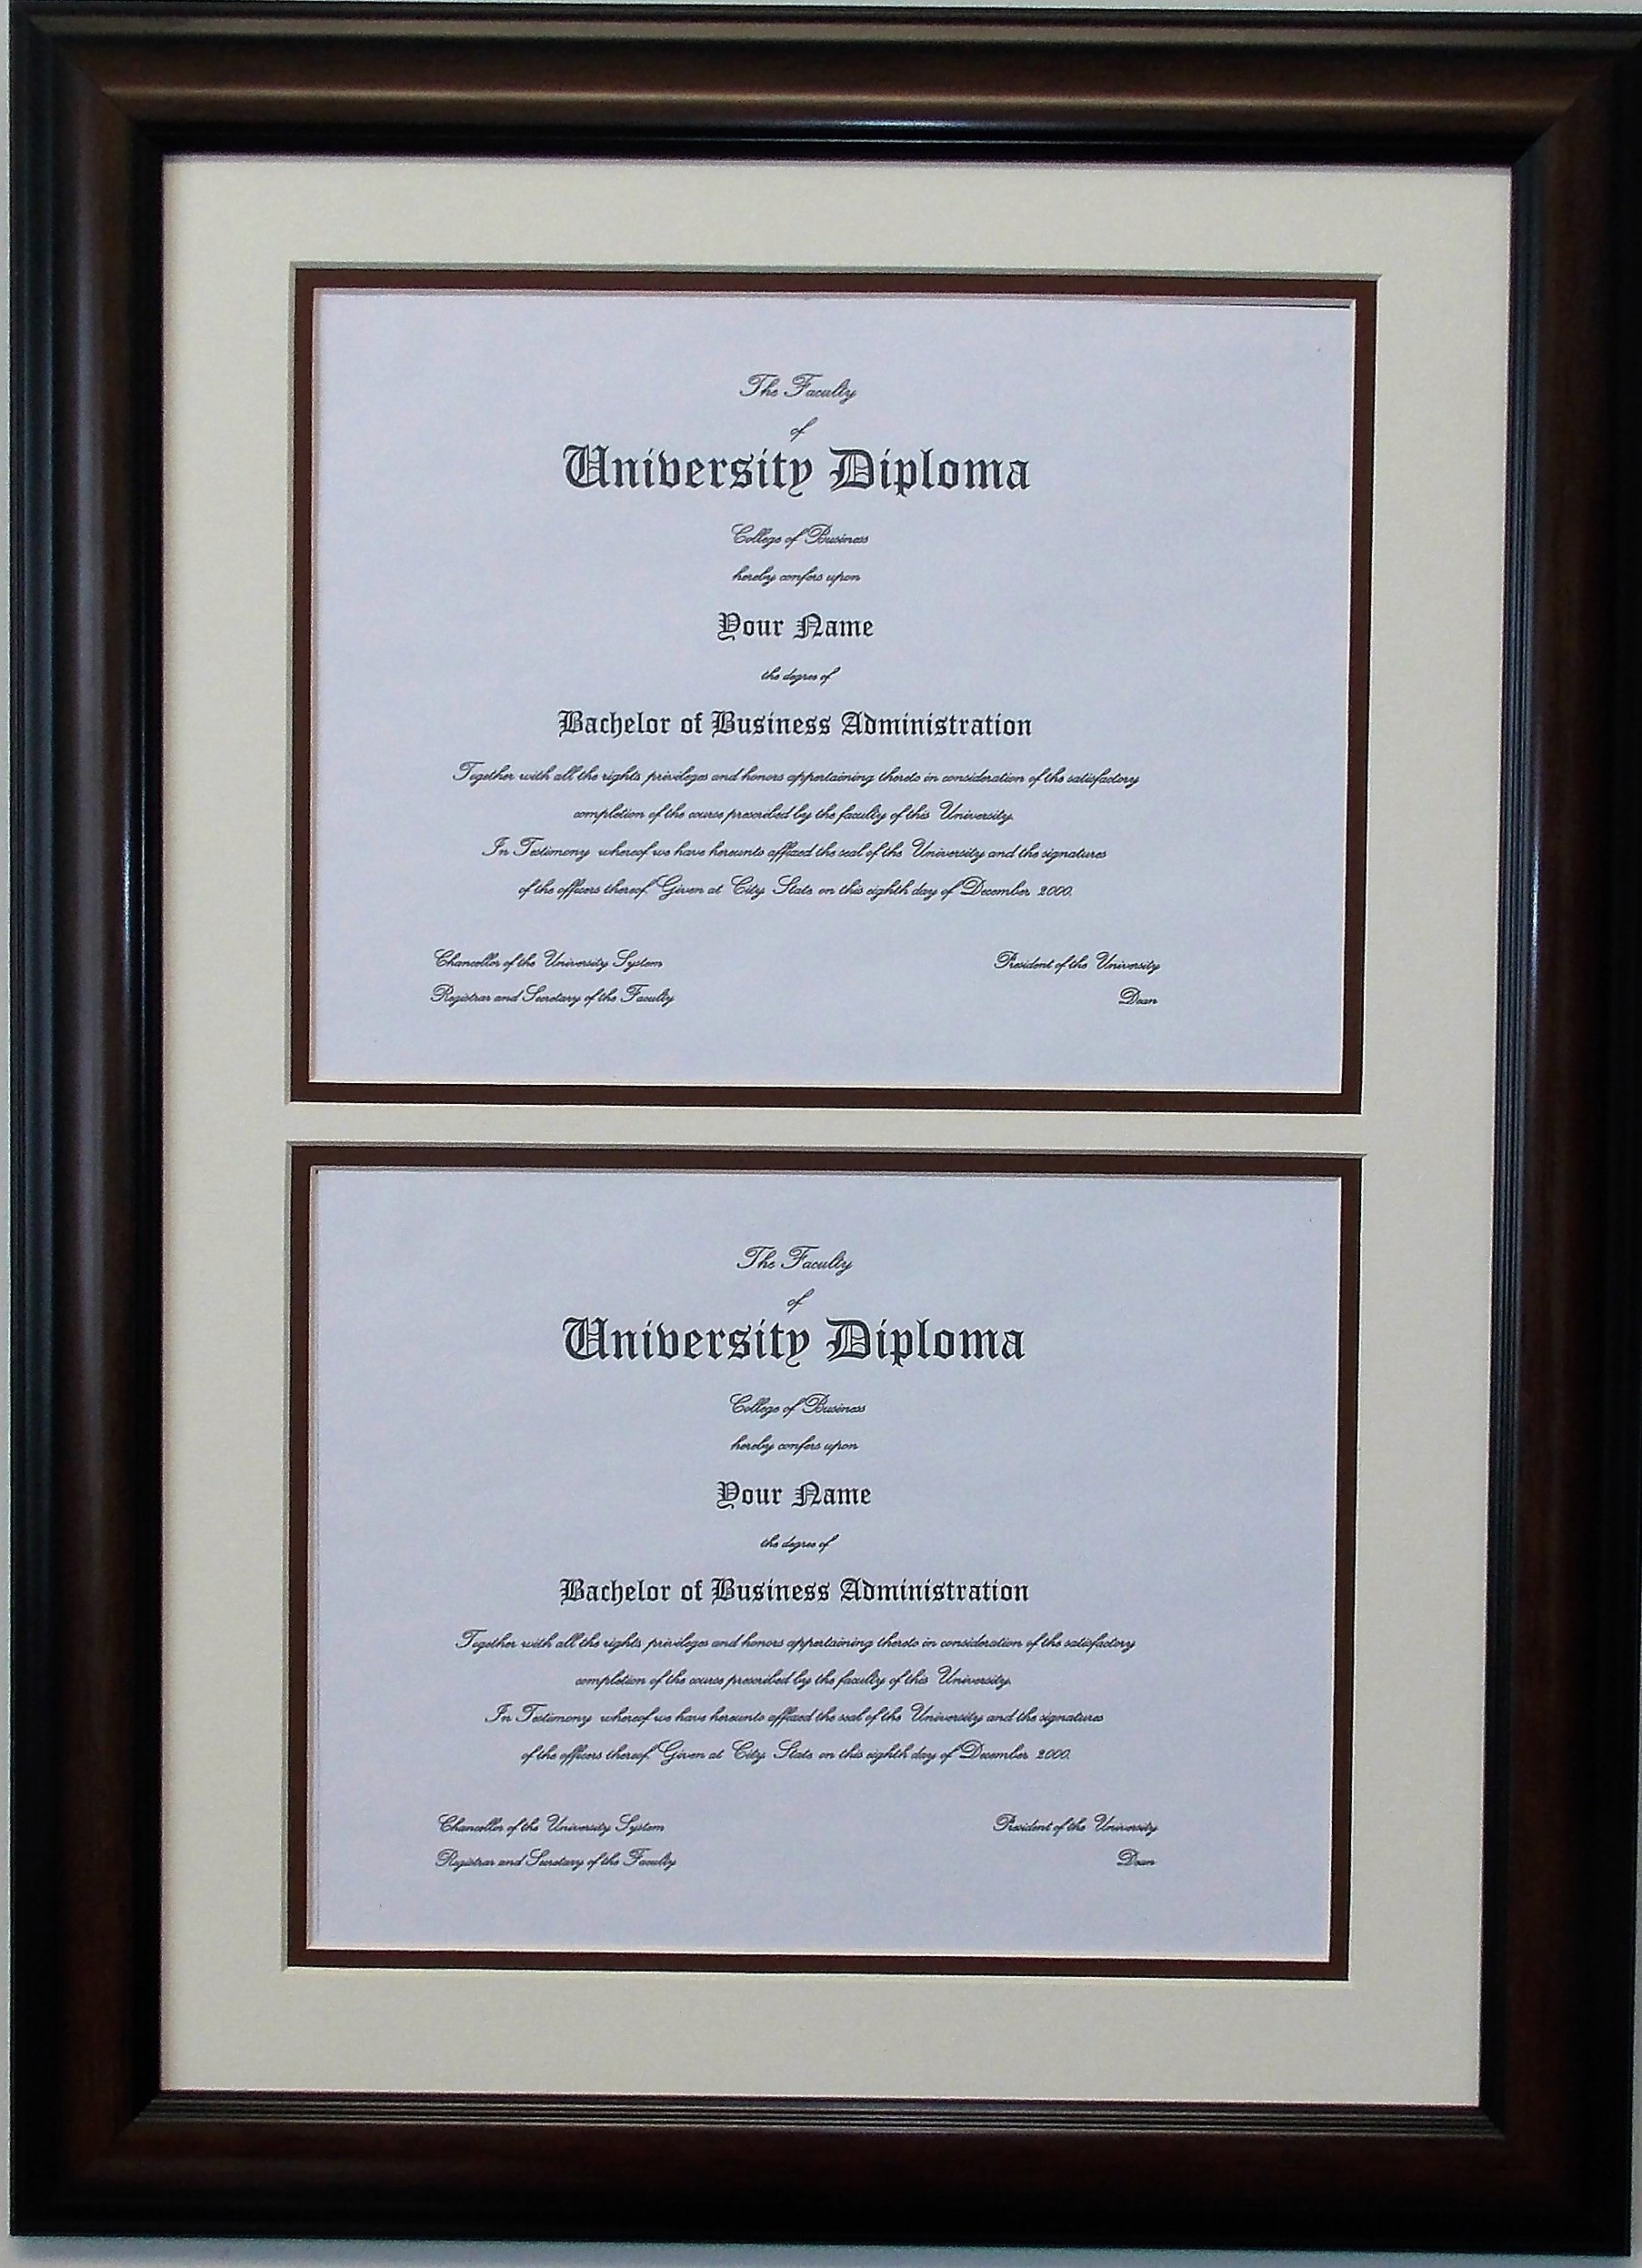 Double Diploma Document Certificate Openings Wood Picture Frame for Two 8.5x11 8-1/2x11 8.5 x 11